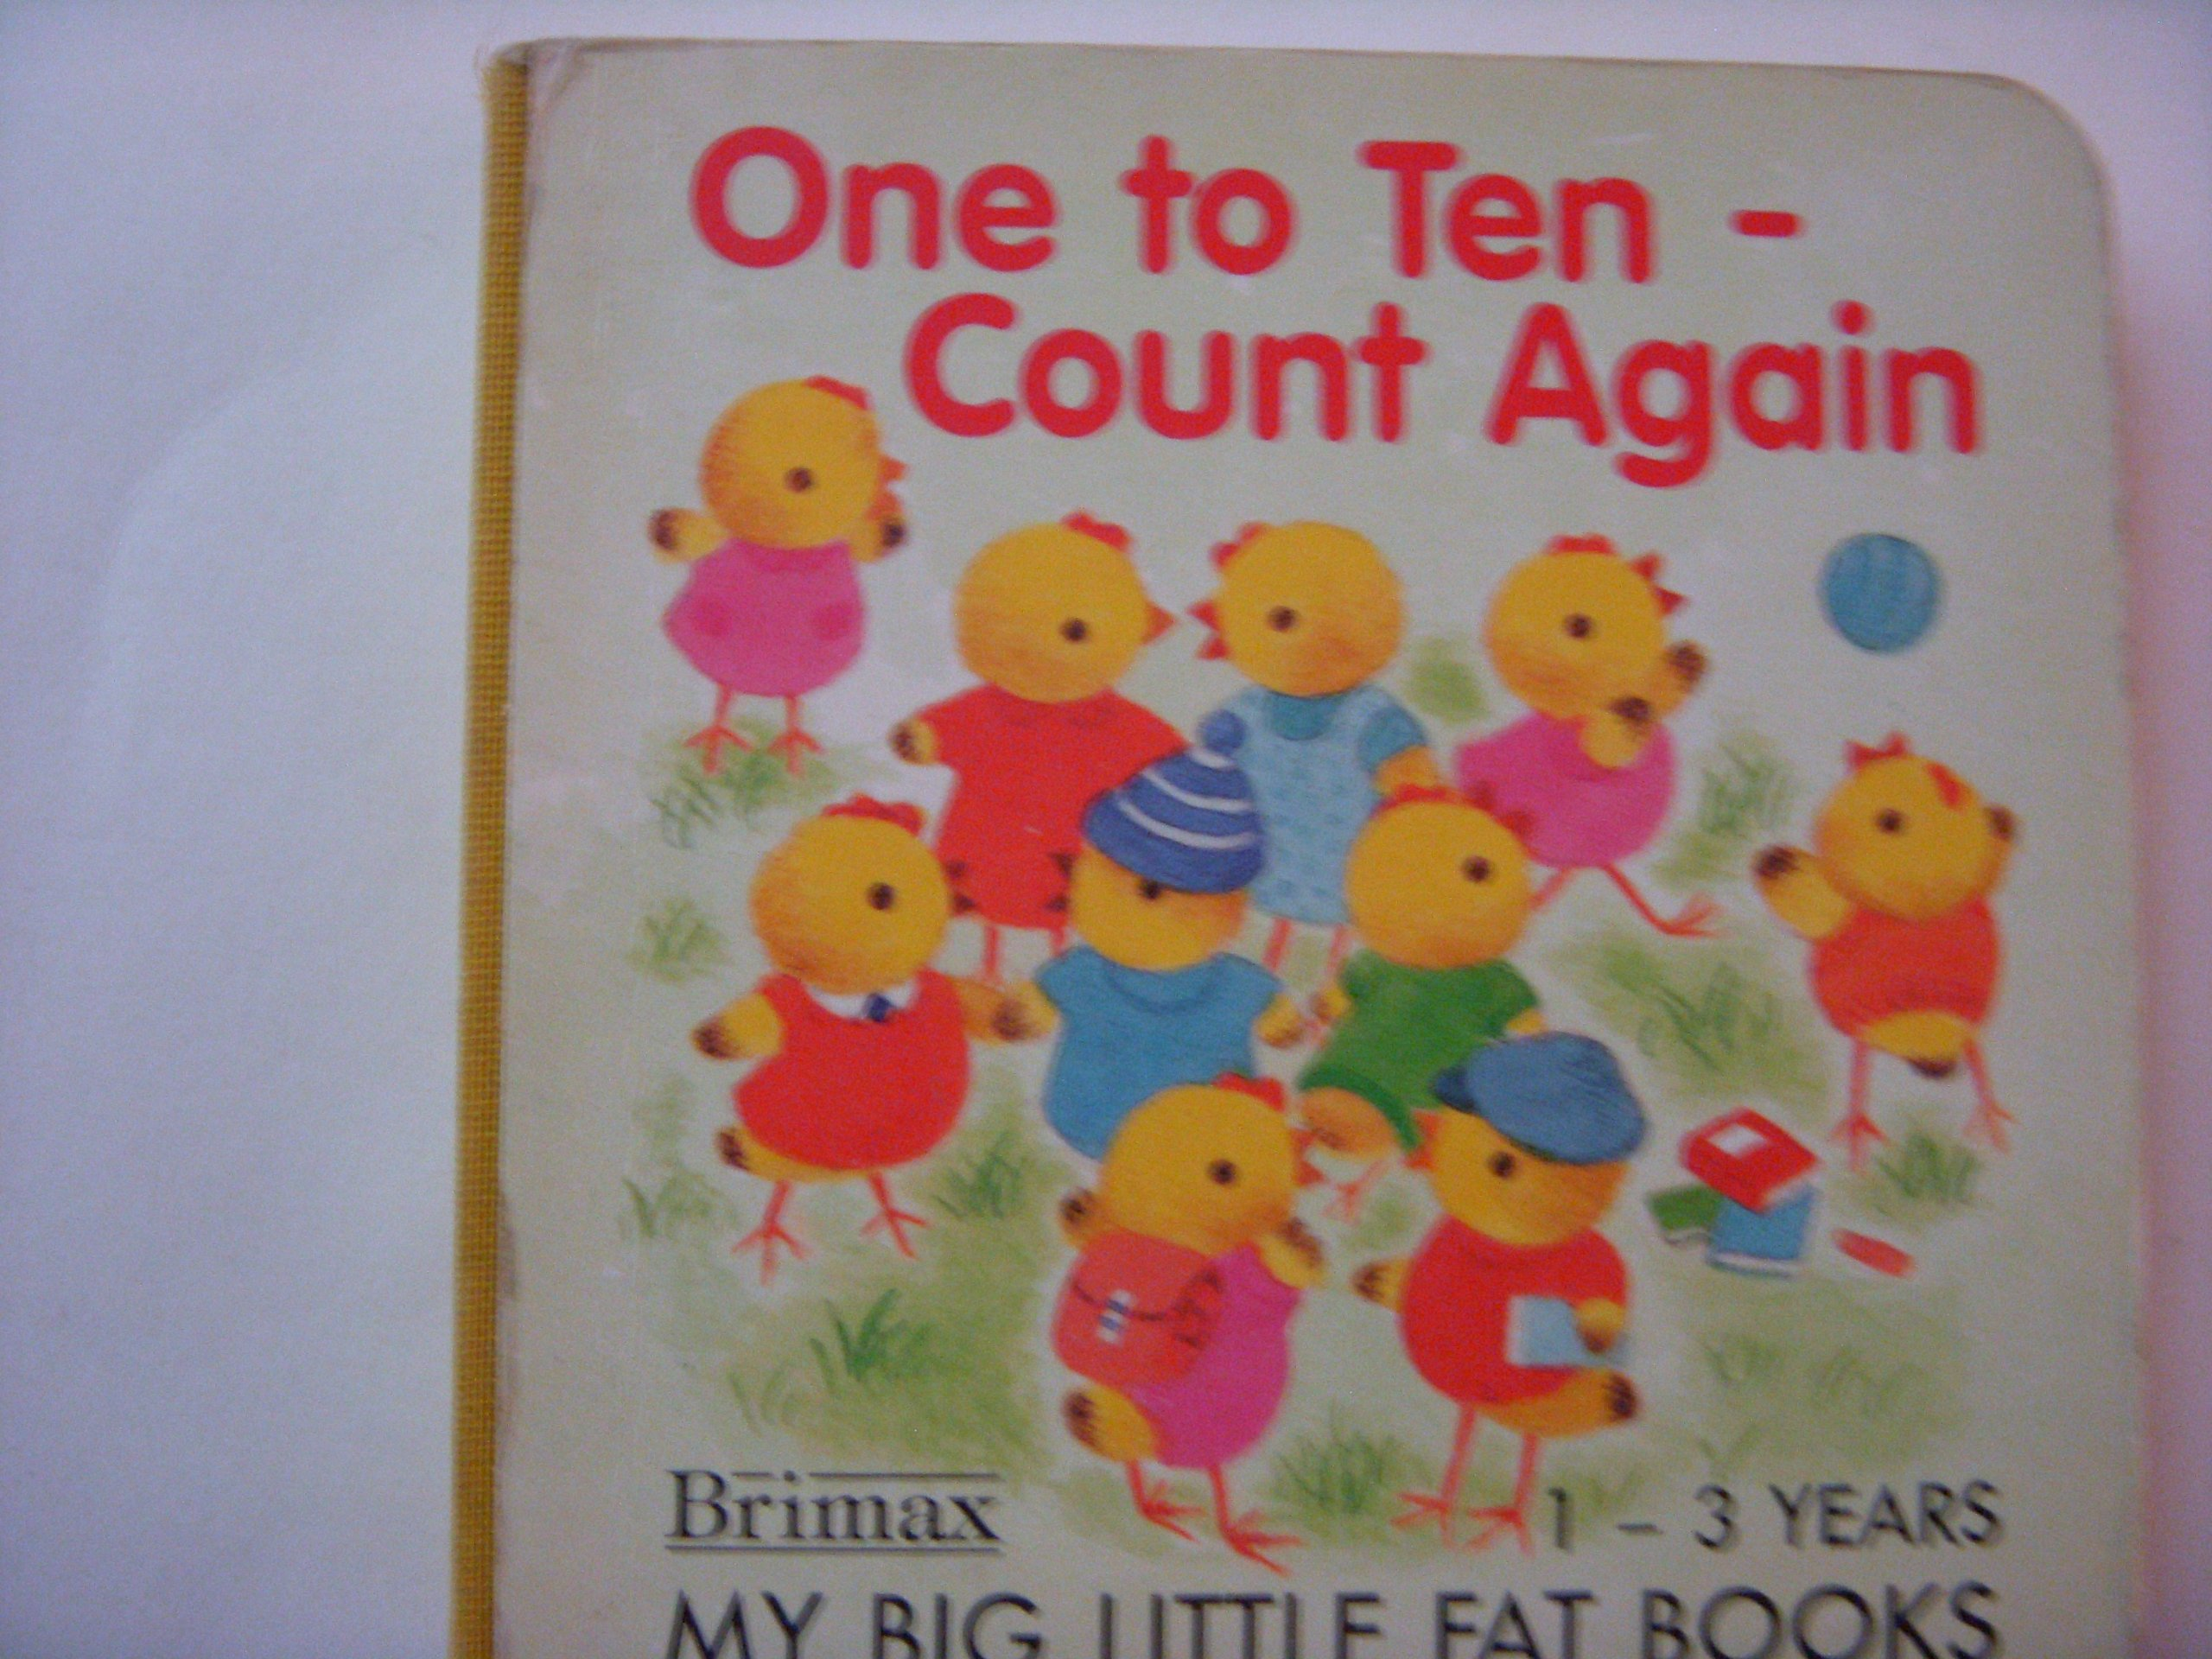 One to Ten (My Big Little Fat Books)